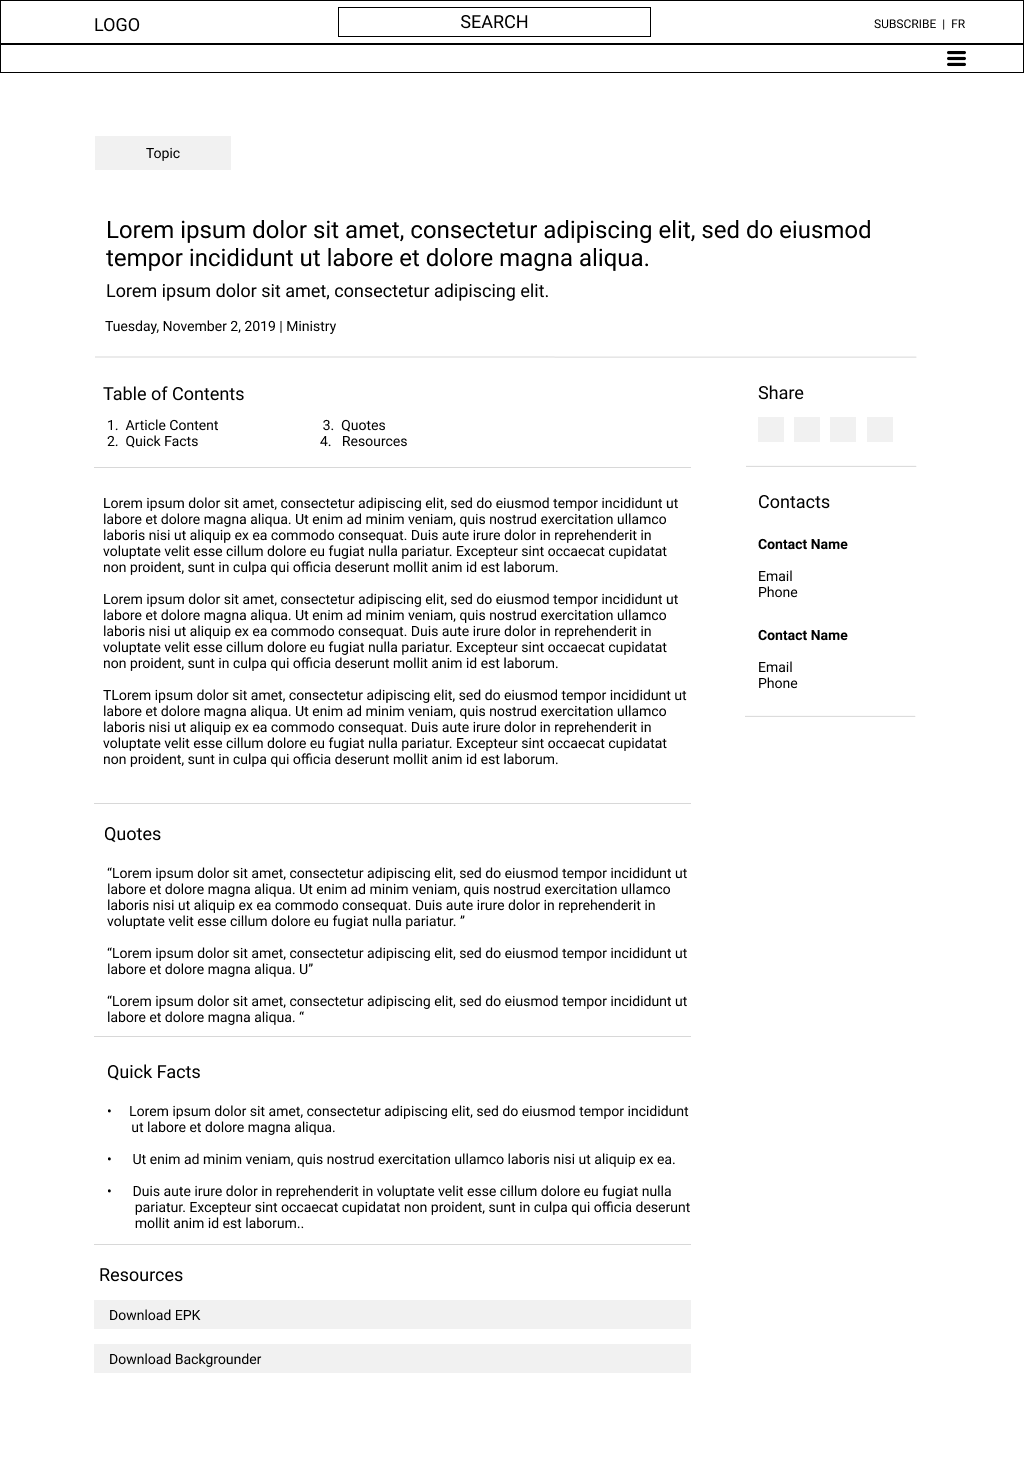 Newsroom release page low fidelity